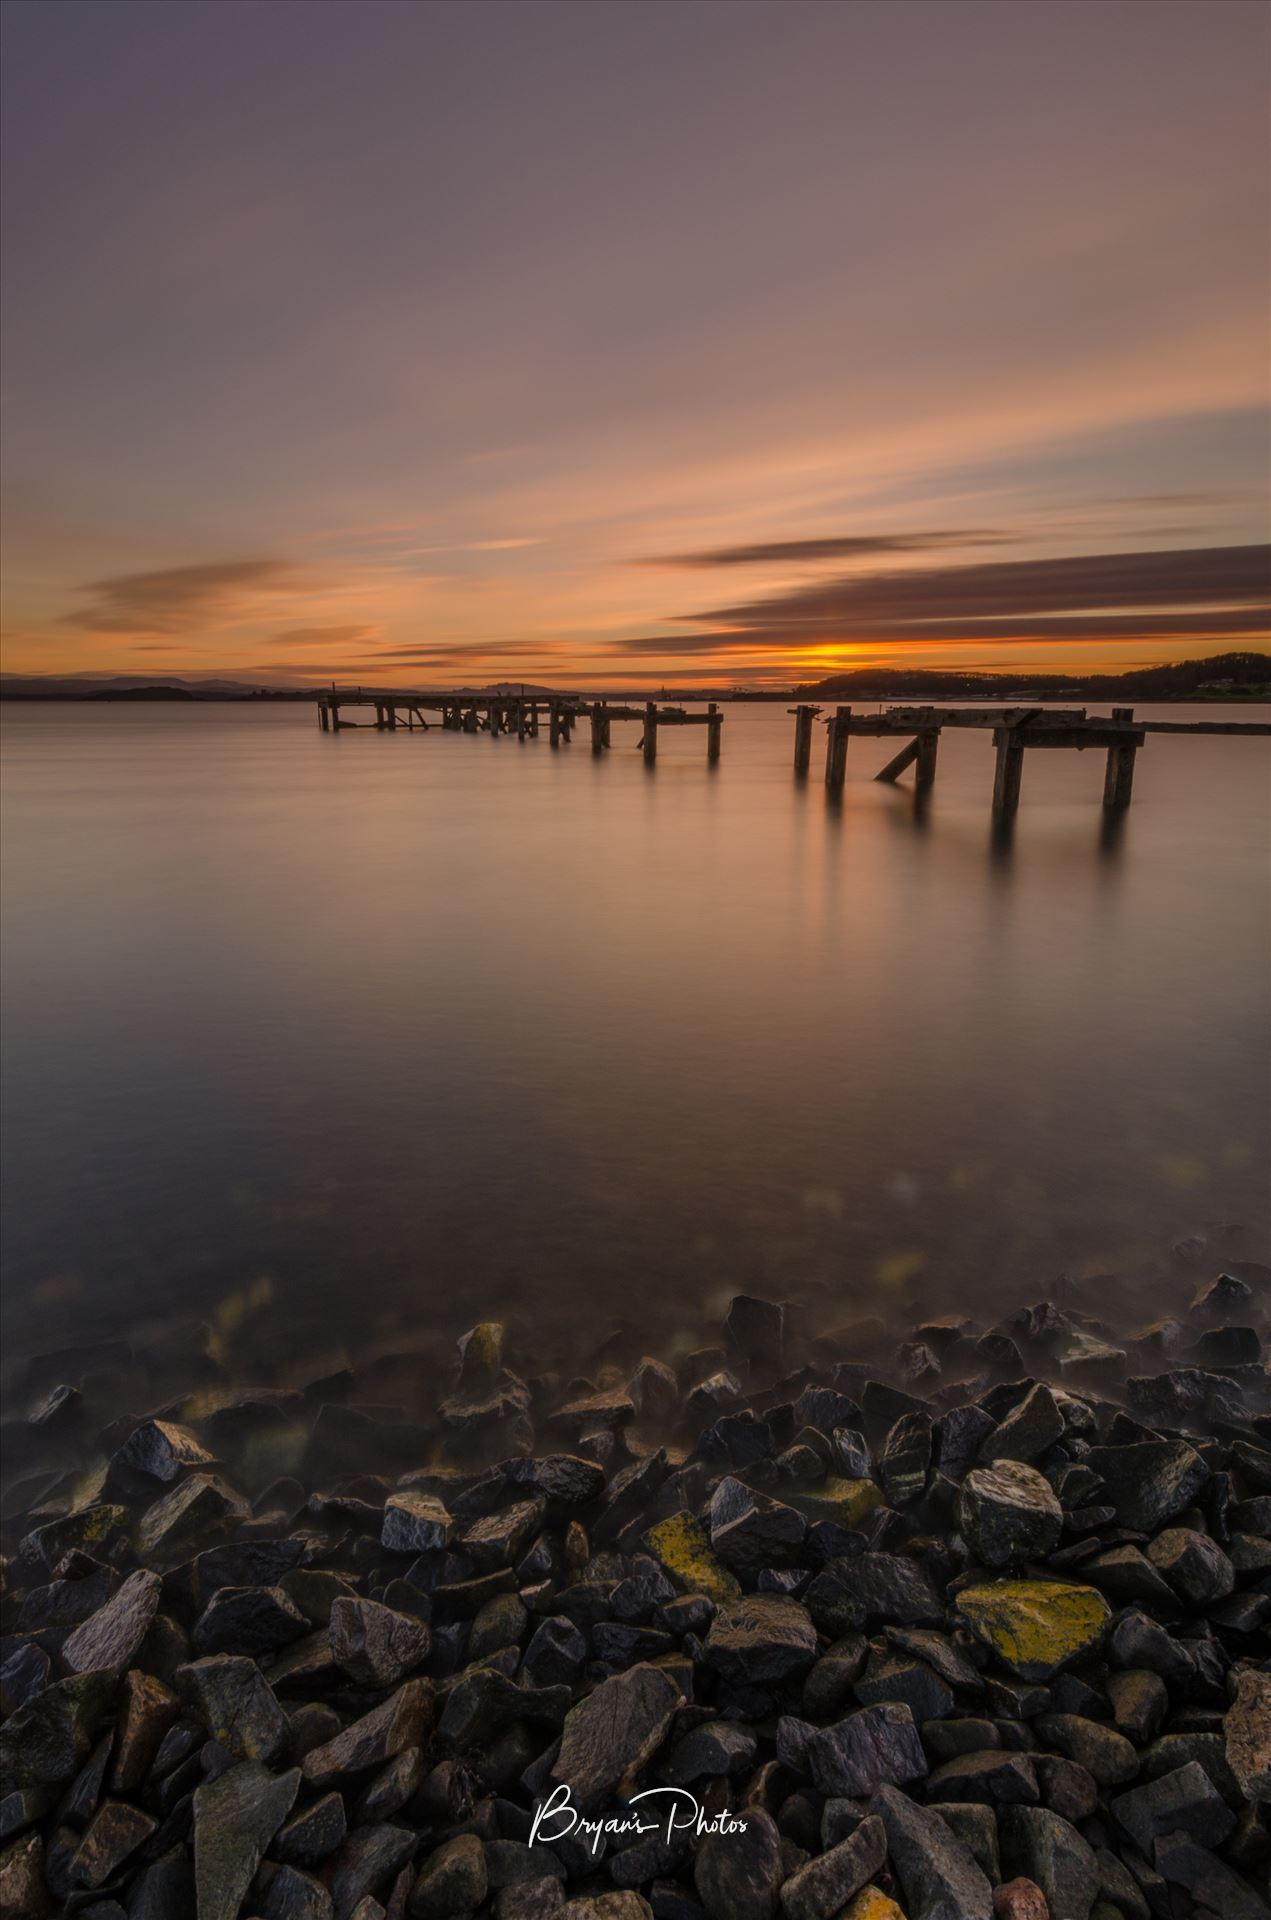 Aberdout at Sunset A photograph of the Abandoned pier at Aberdour on the Fife coast taken as the sun sets. by Bryans Photos